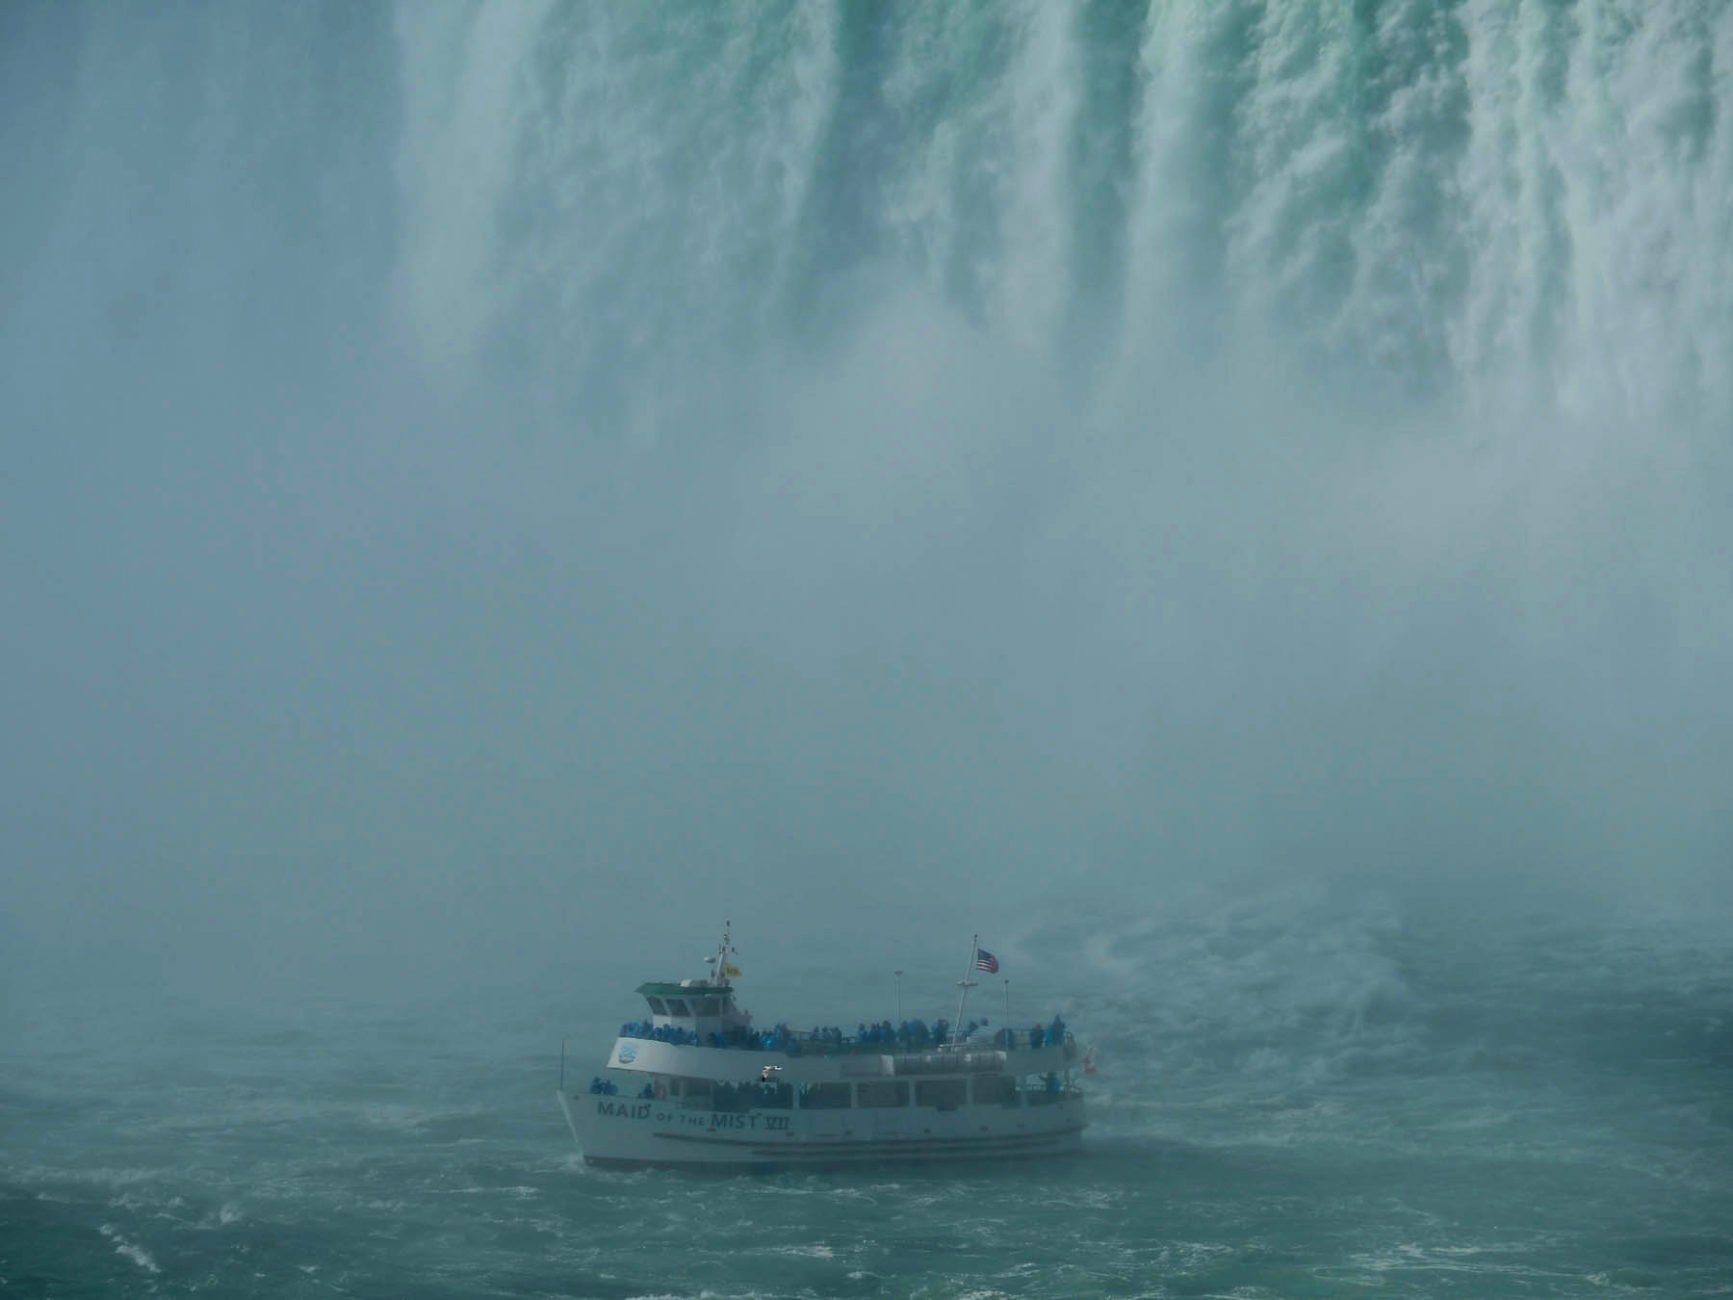 Niagara, Maid of the Mist